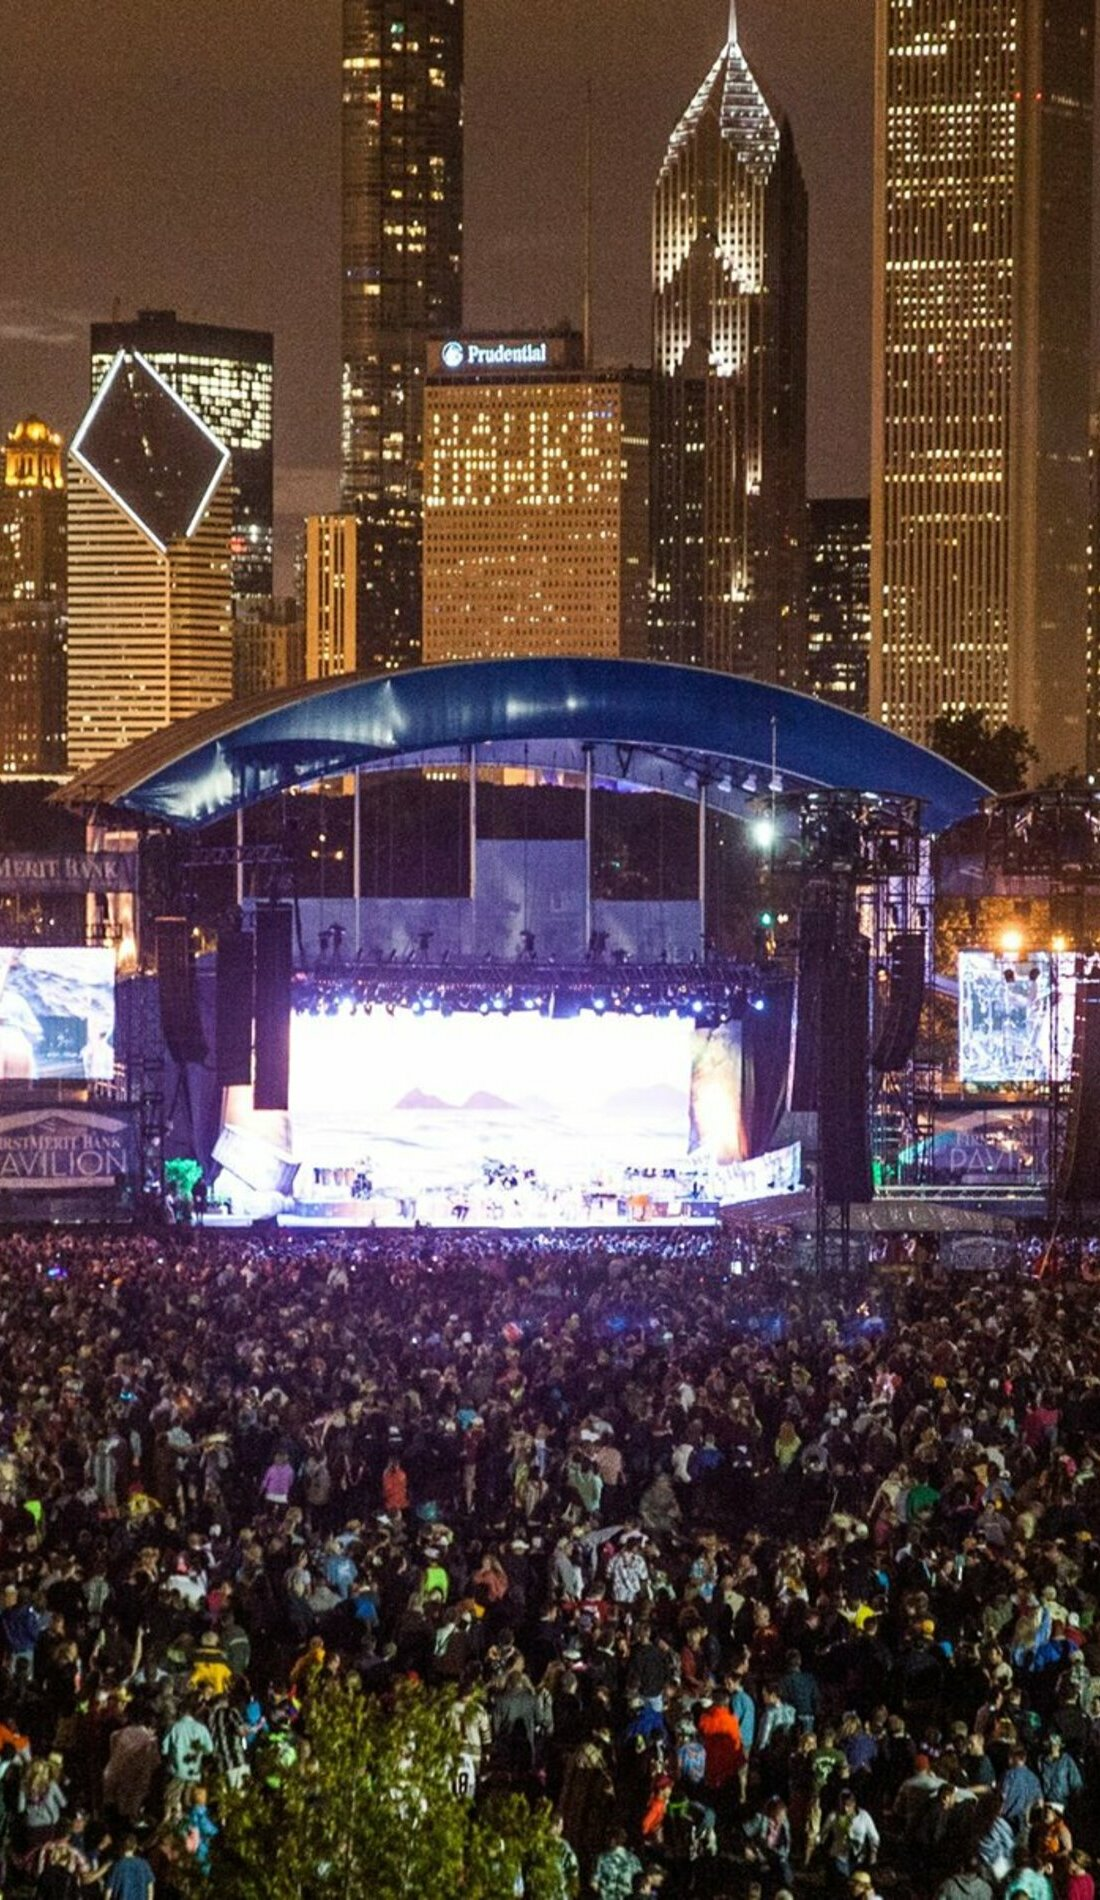 A Windy City LakeShake Festival live event